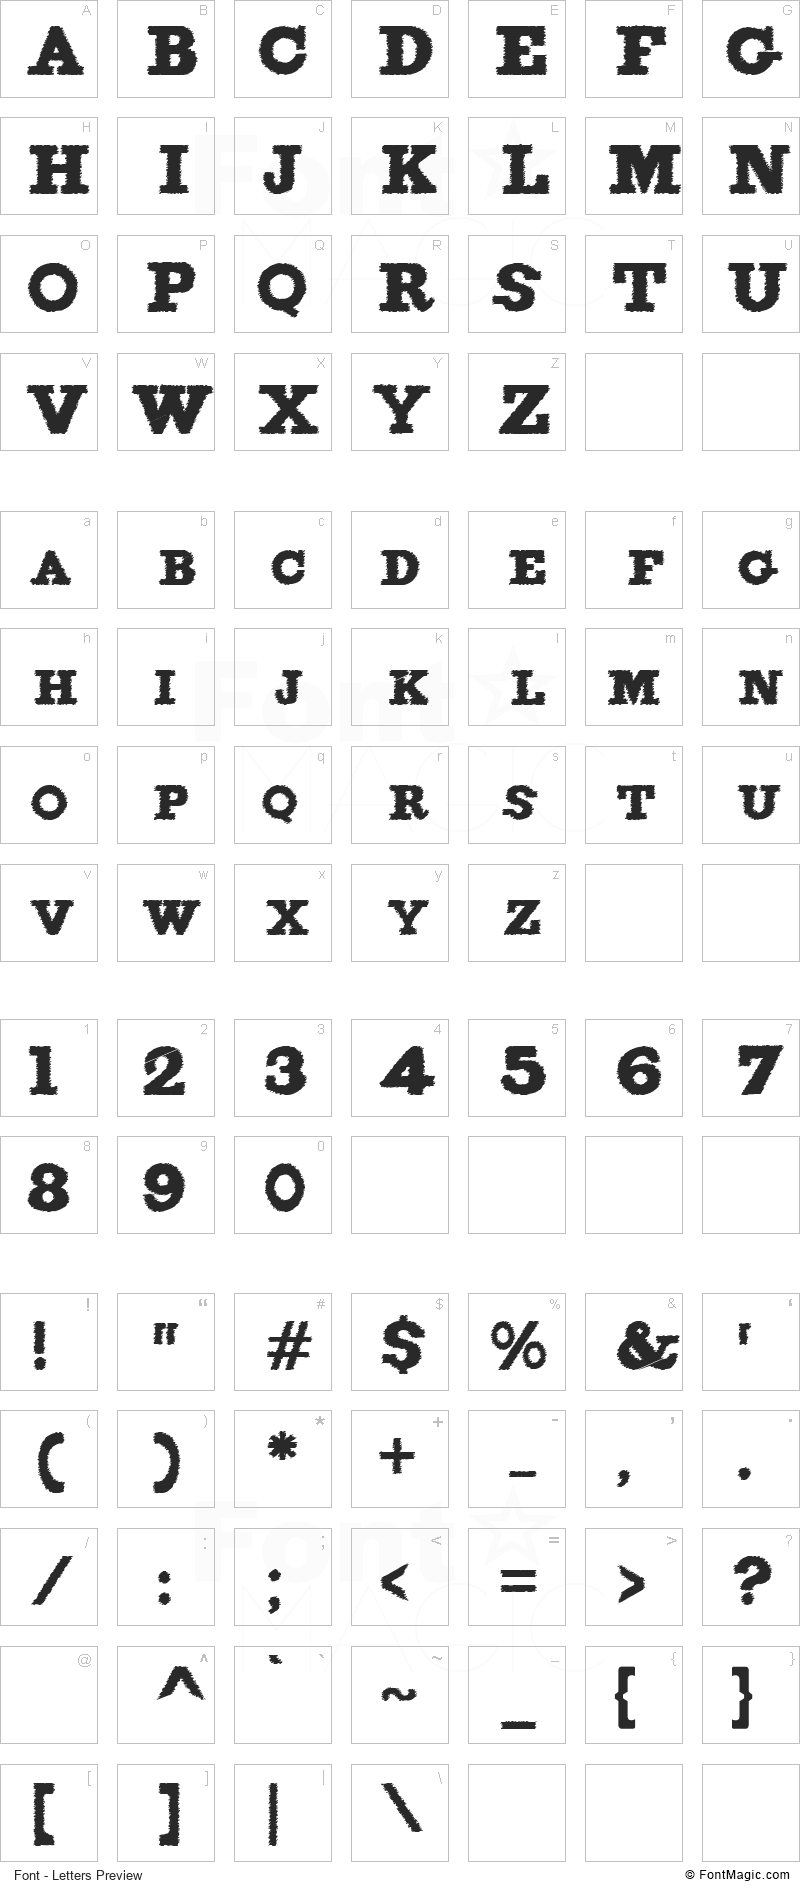 Figgins Brute Trash Font - All Latters Preview Chart